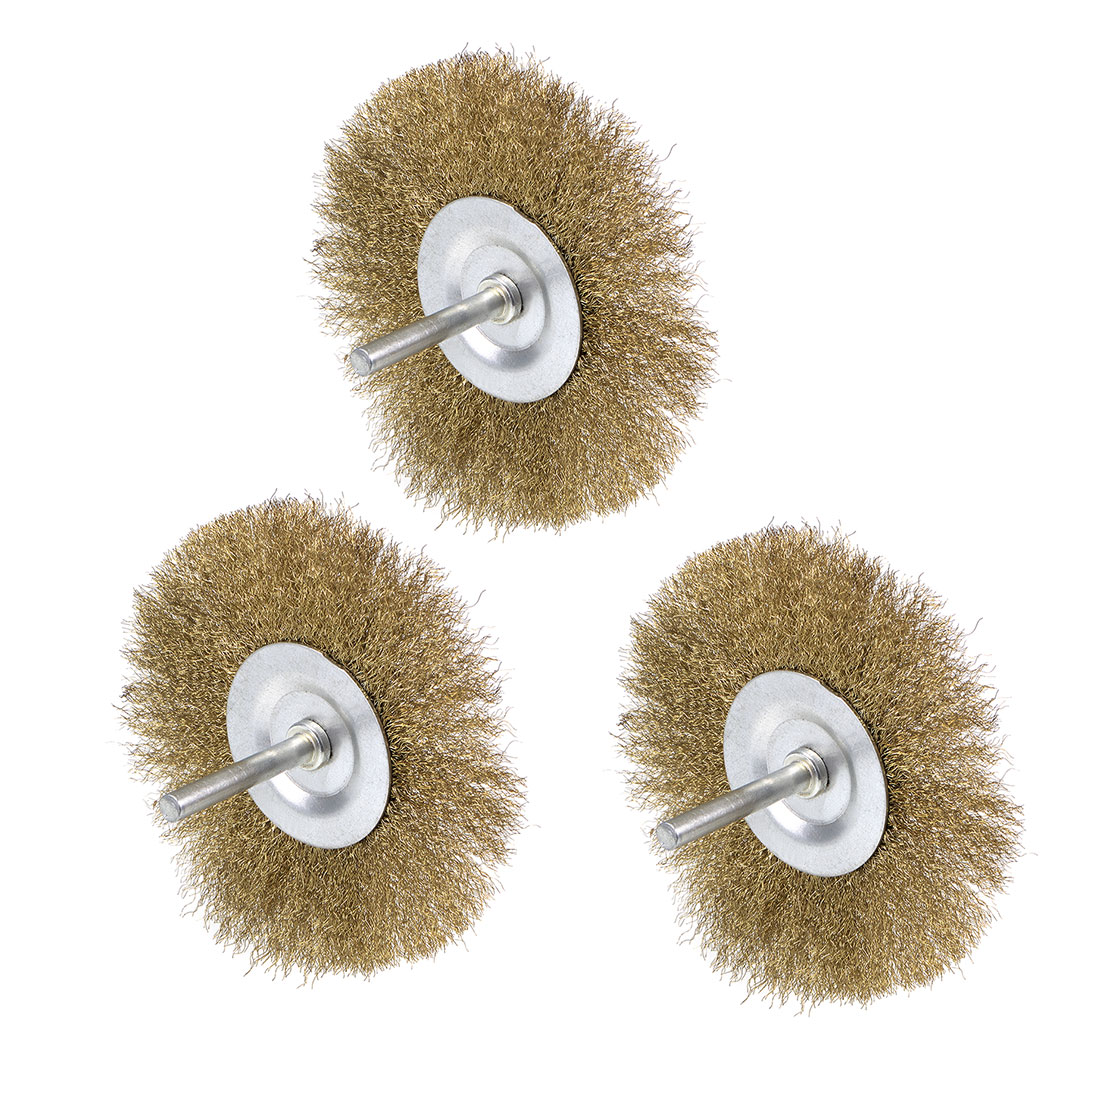 4-Inch Wire Wheel Brush Bench Brass Plated Crimped Steel 1/4-Inch Shank 3Pcs